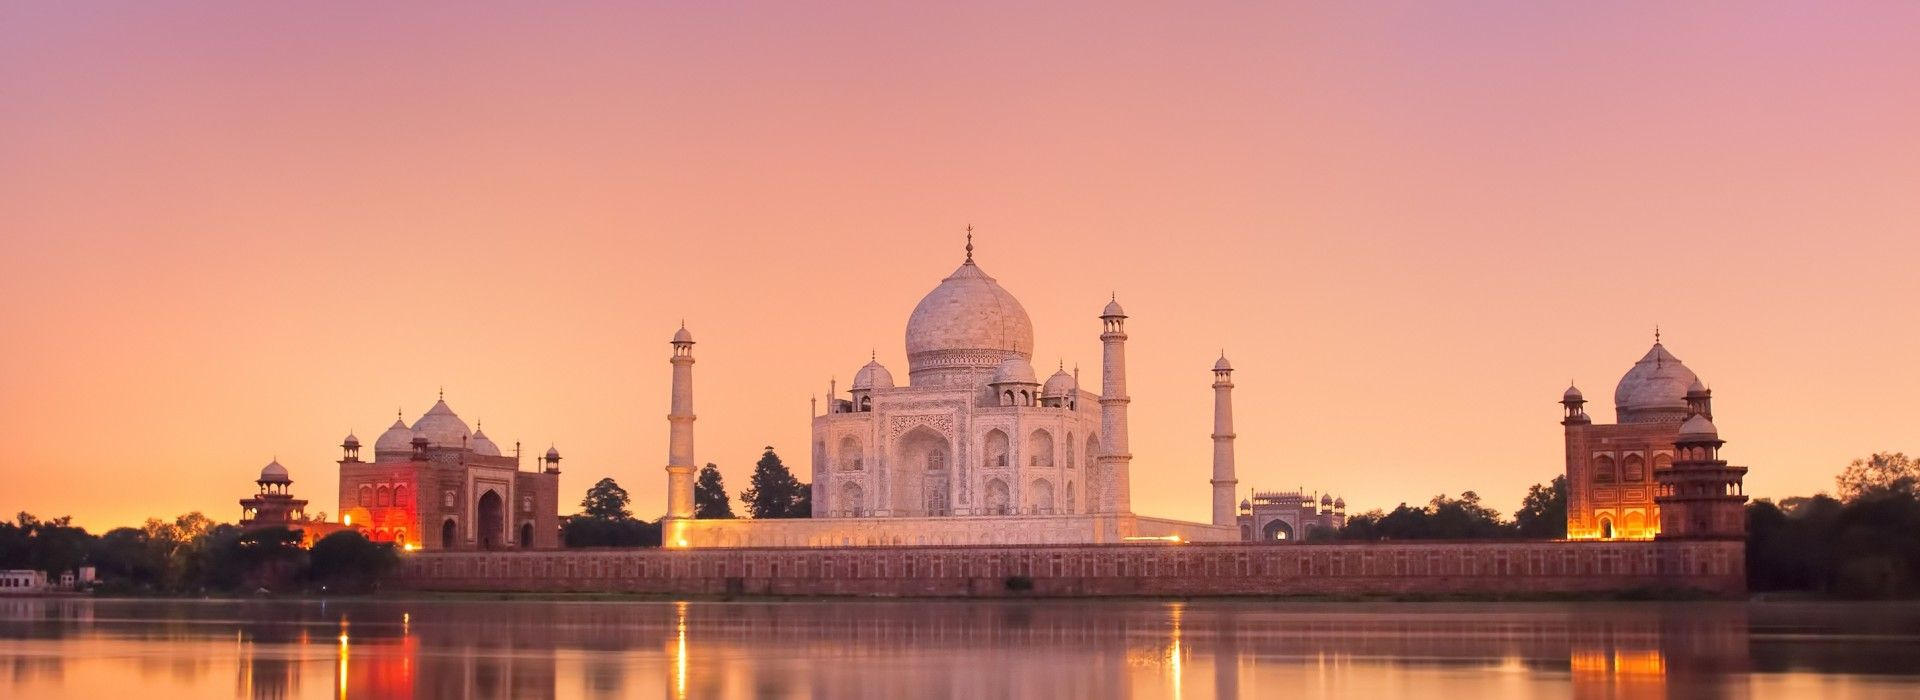 Cultural, religious and historic sites Tours in Agra